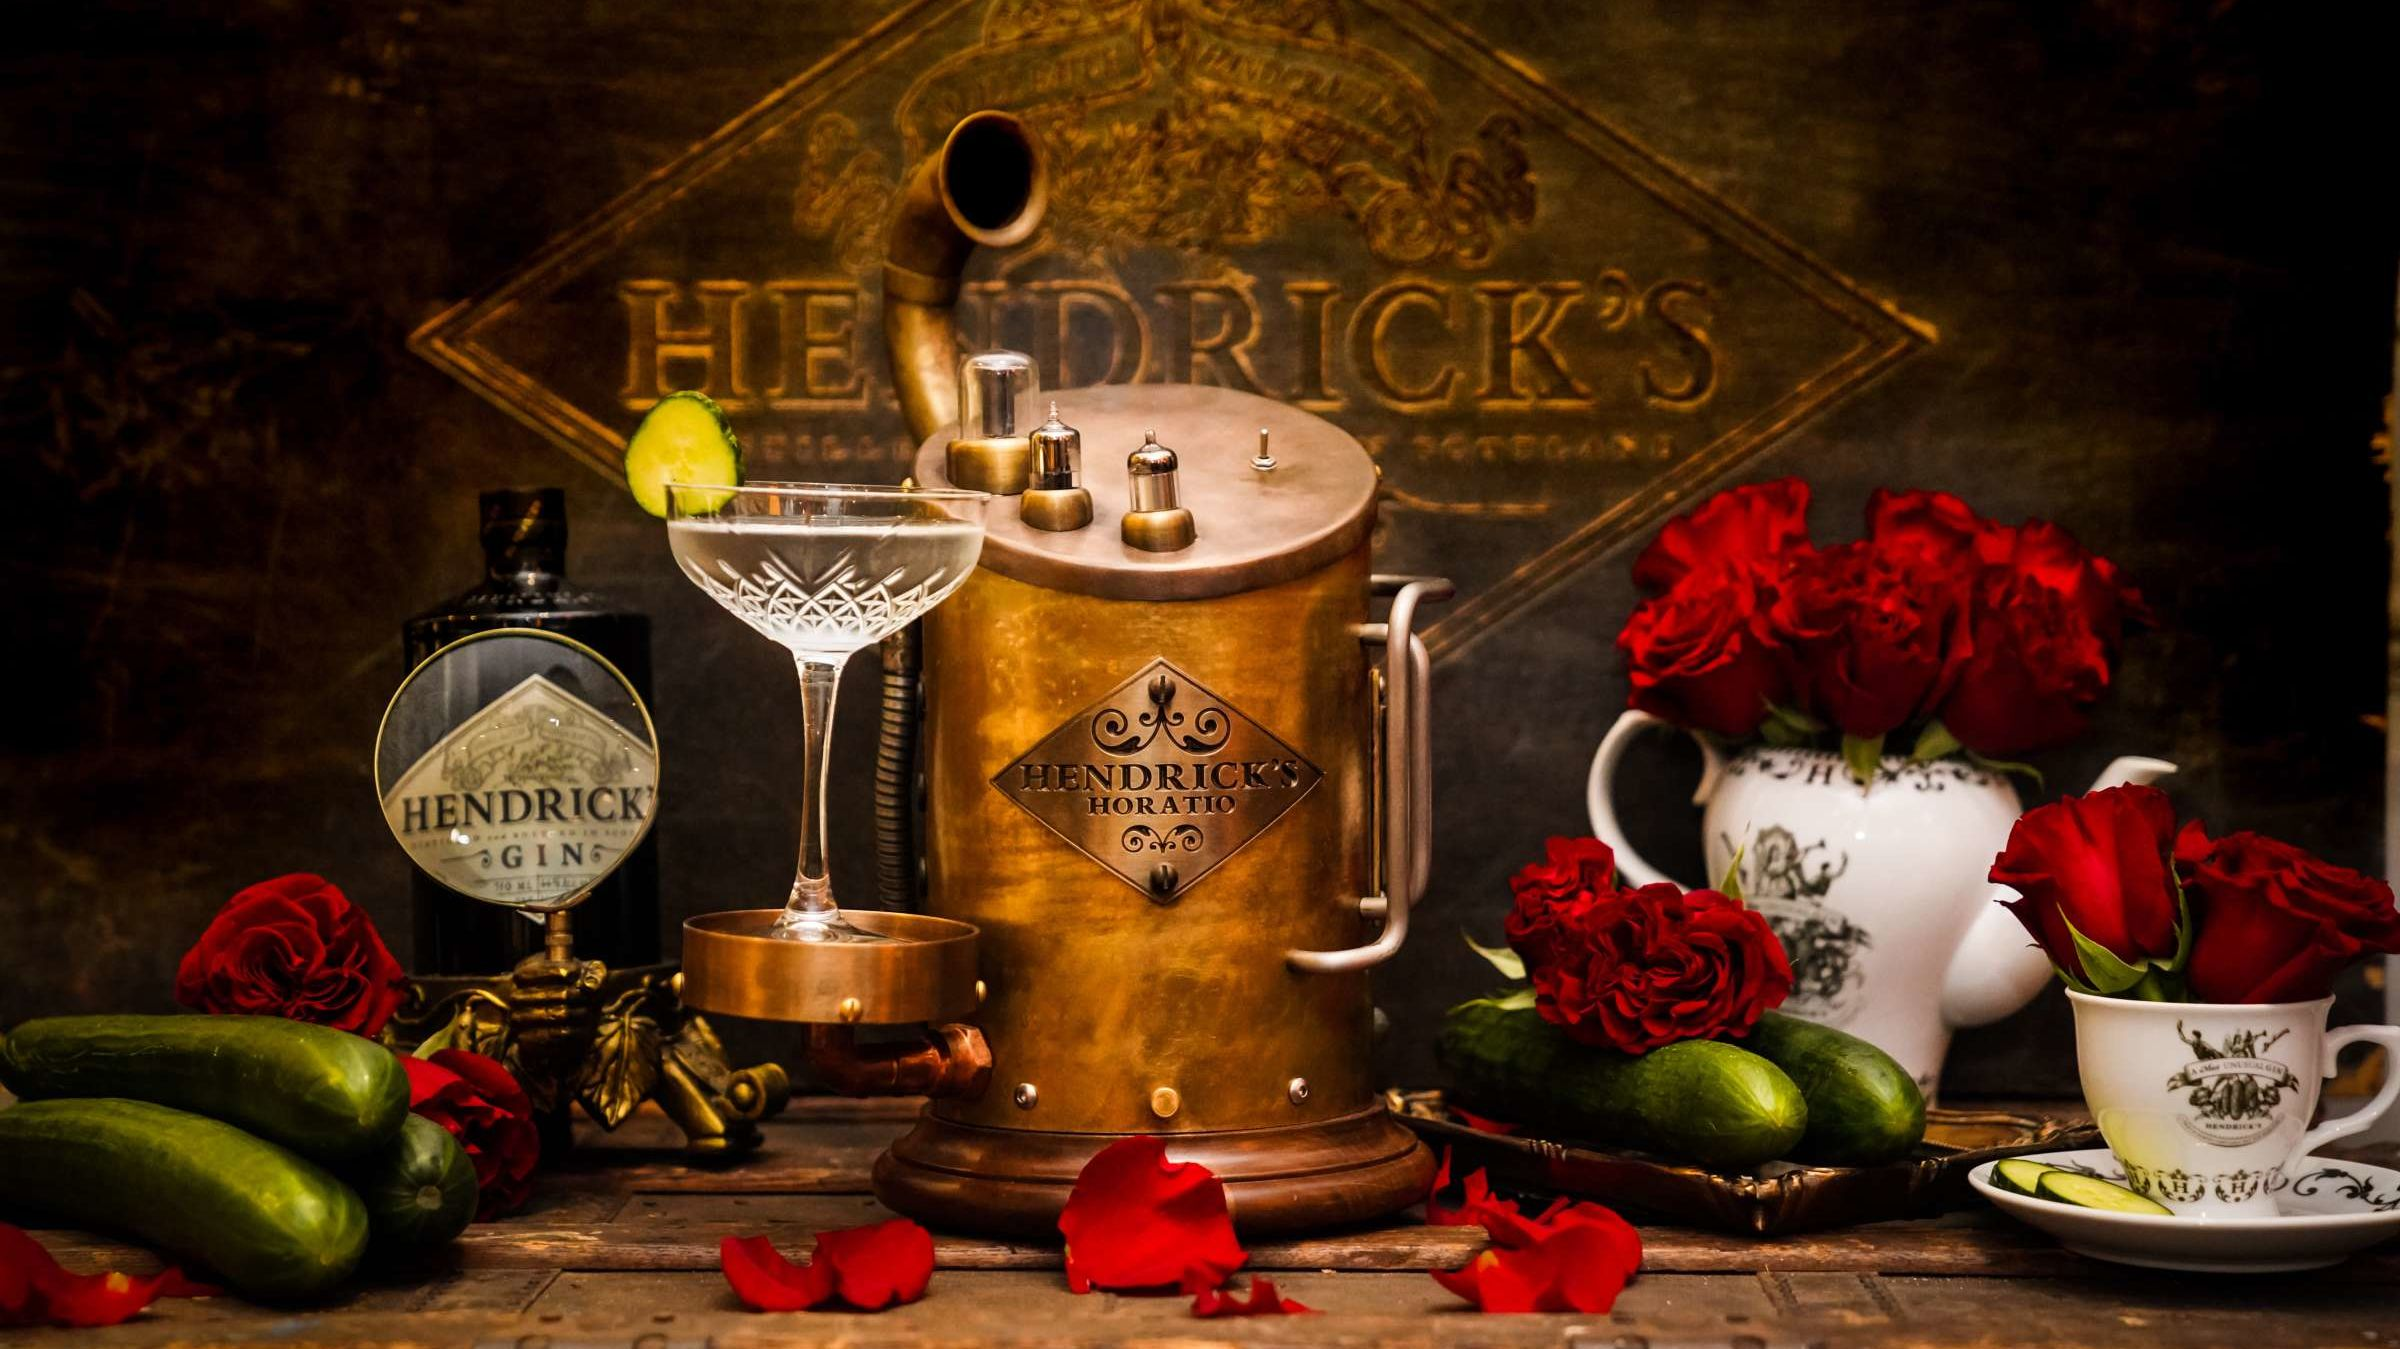 Meet Horatio, The Old-timey ?smart? Speaker From Hendrick?s Gin photo